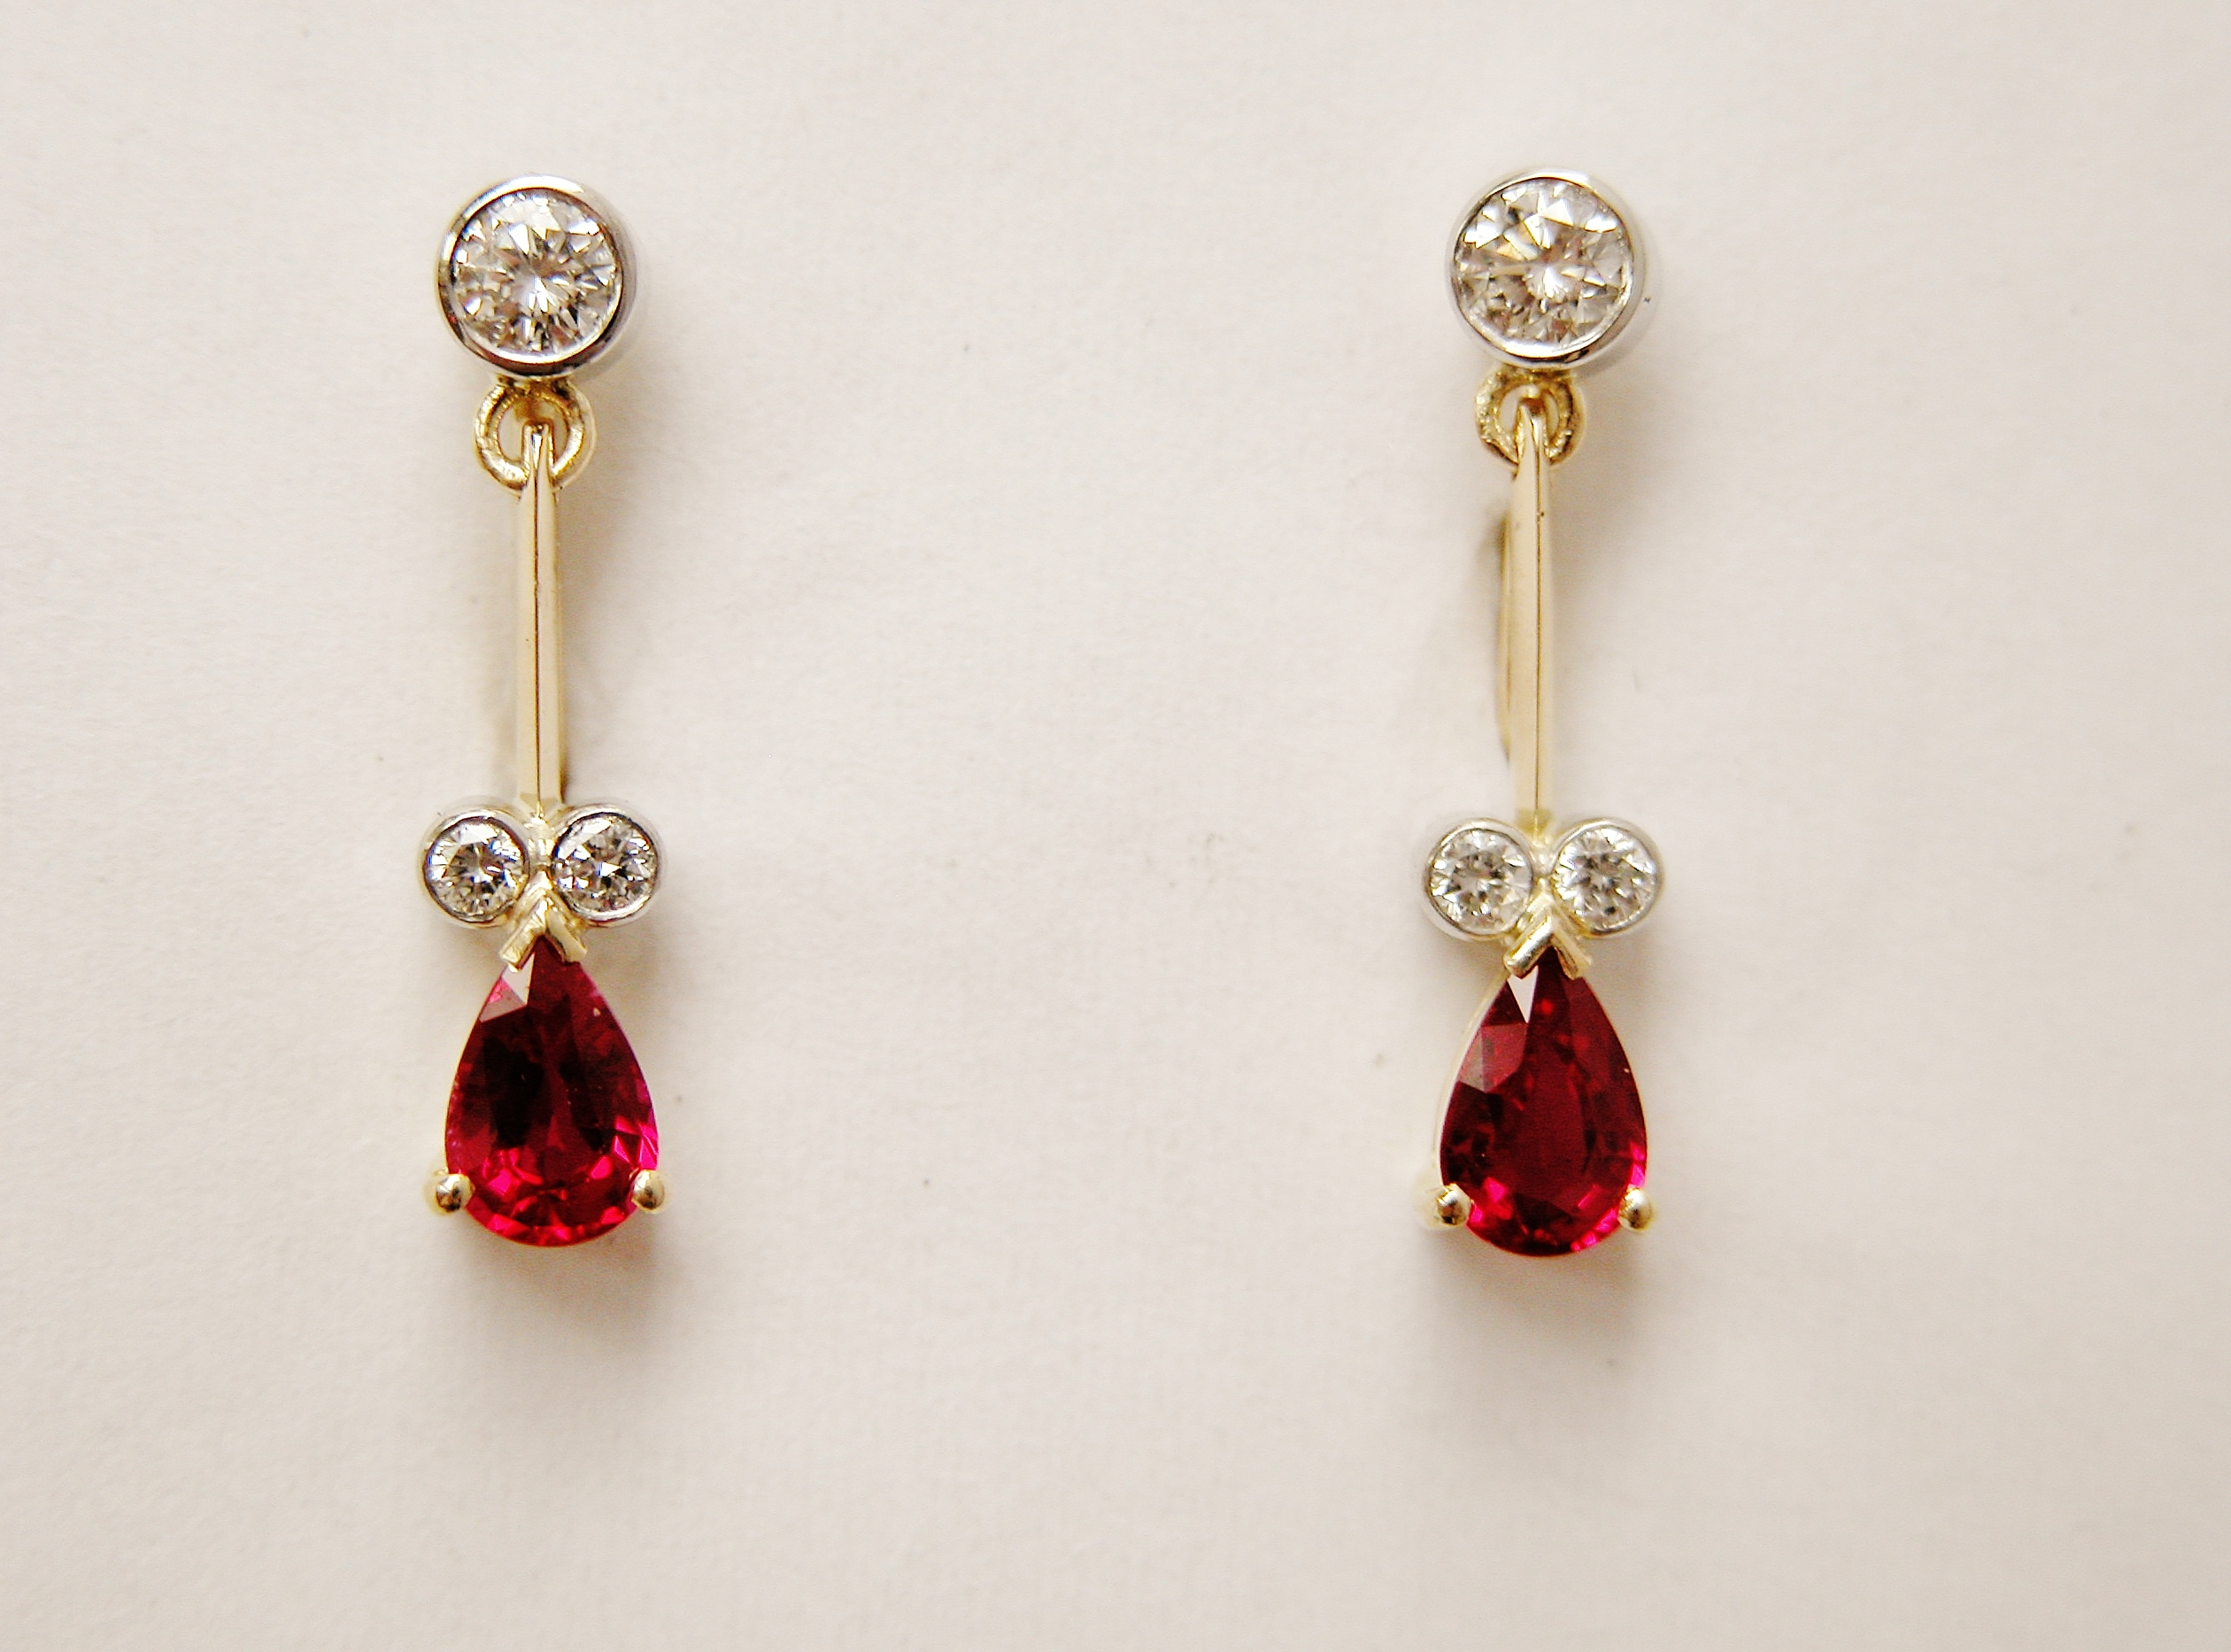 Pear shaped ruby and diamond 18ct. yellow gold pendulum style earrings.